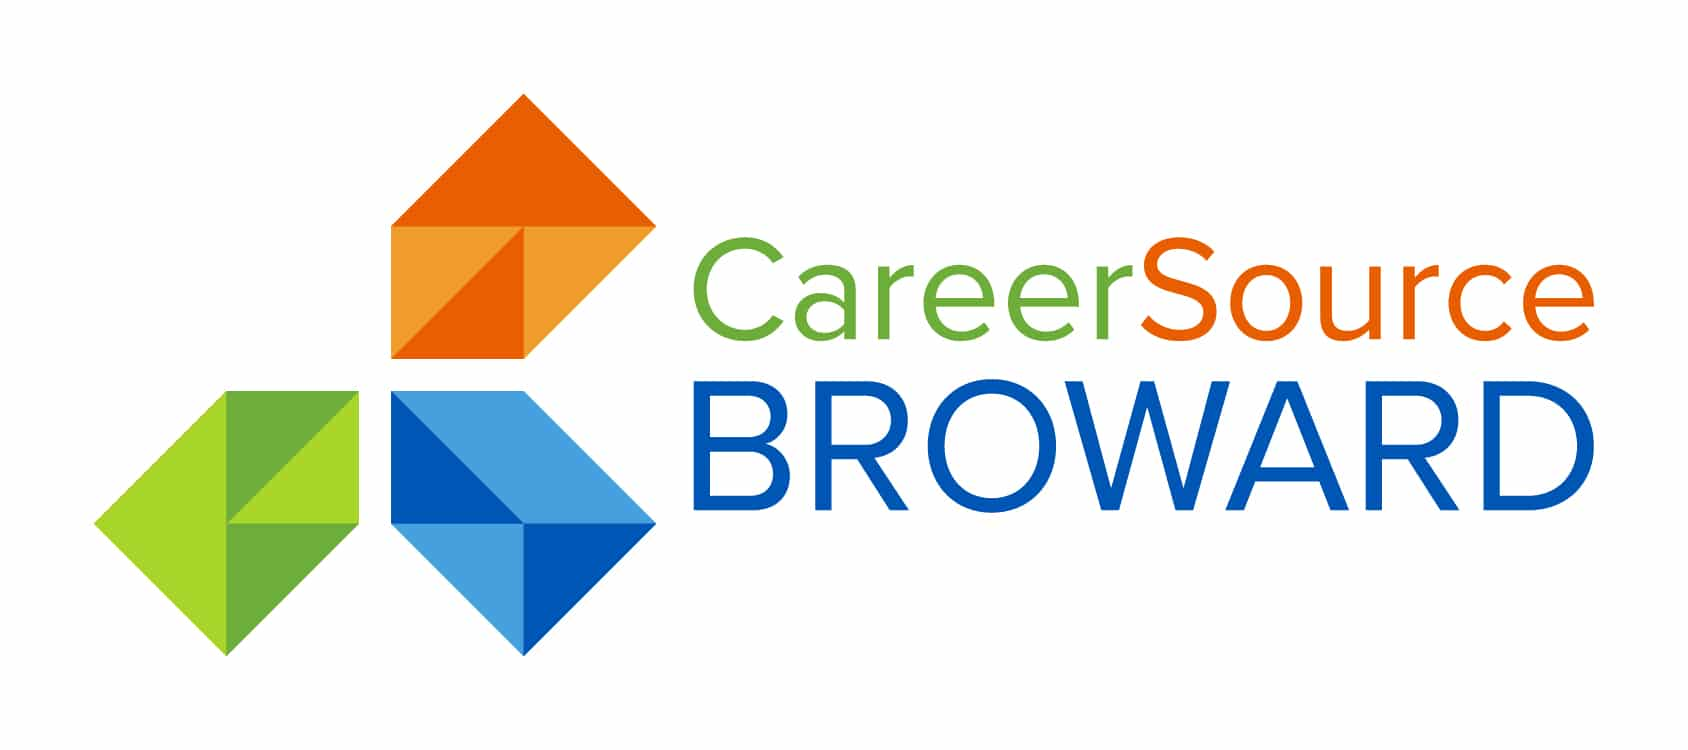 22 CareerSource Broward Full Color